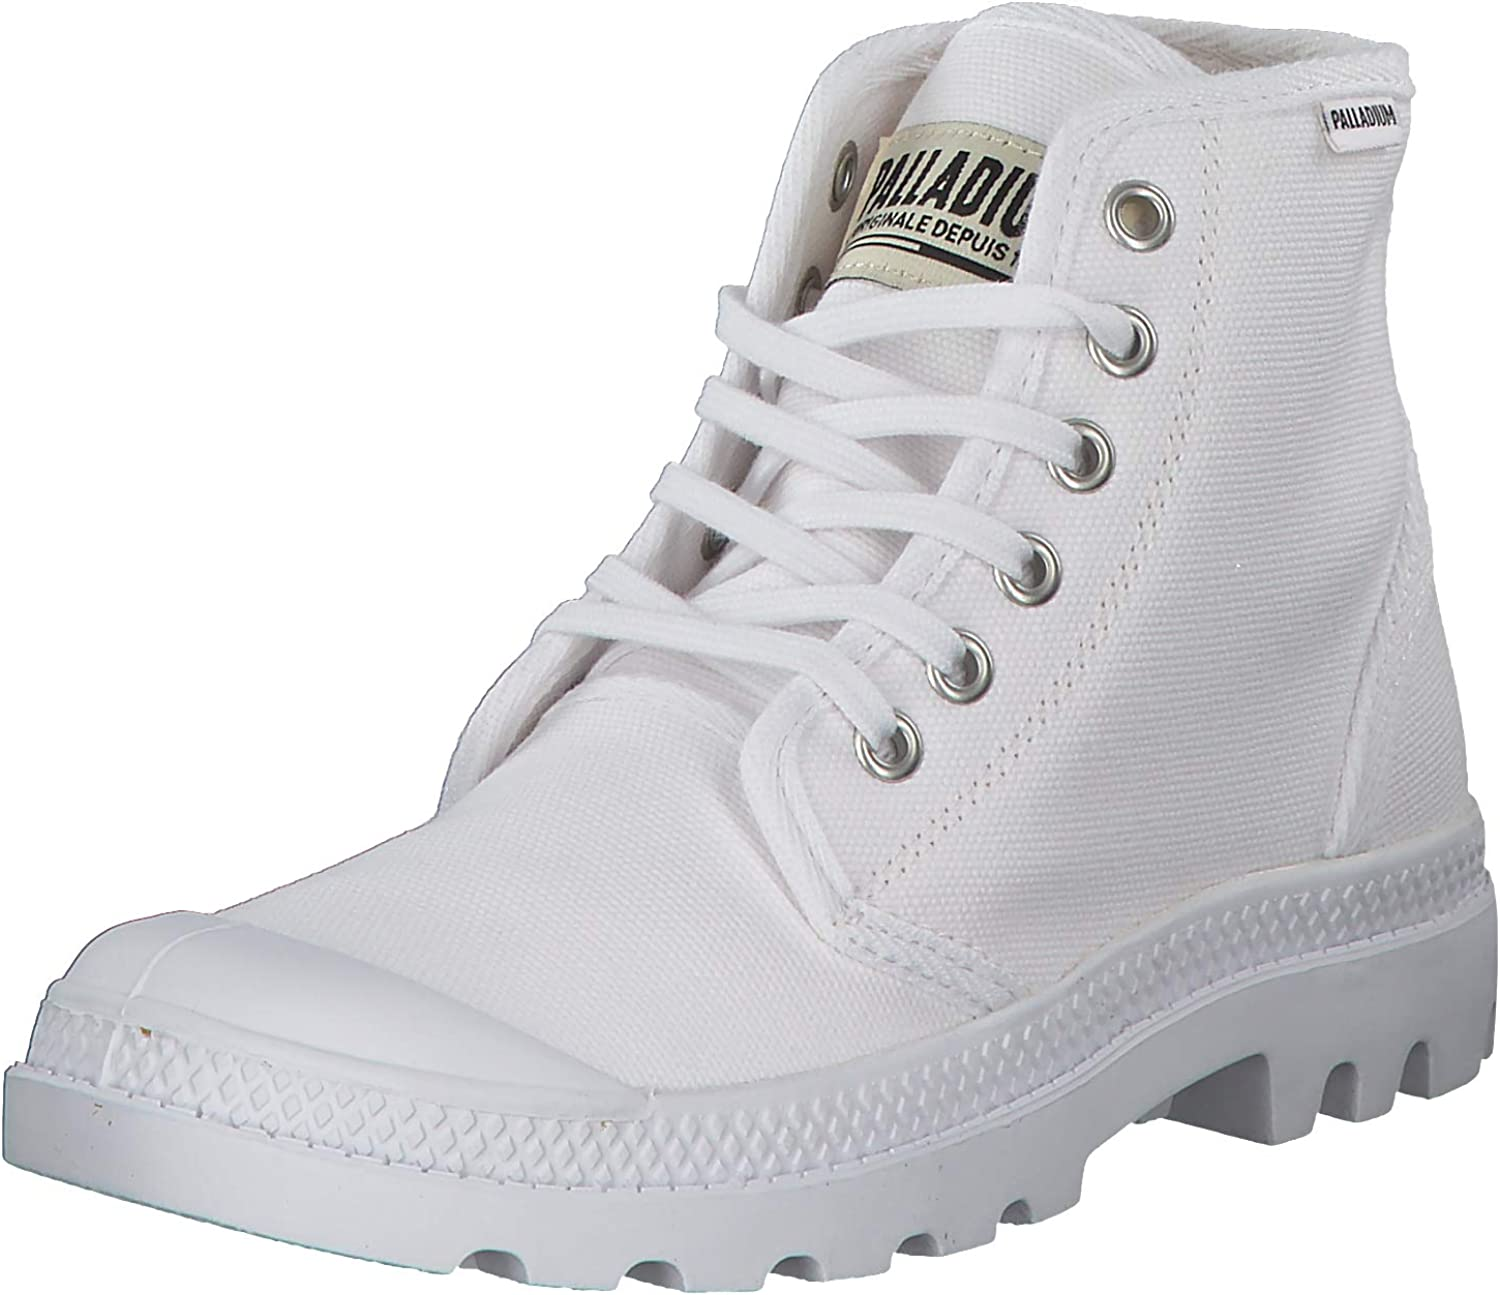 Palladium Unisex Adults' Pampa Hi Originale Slouch Boots